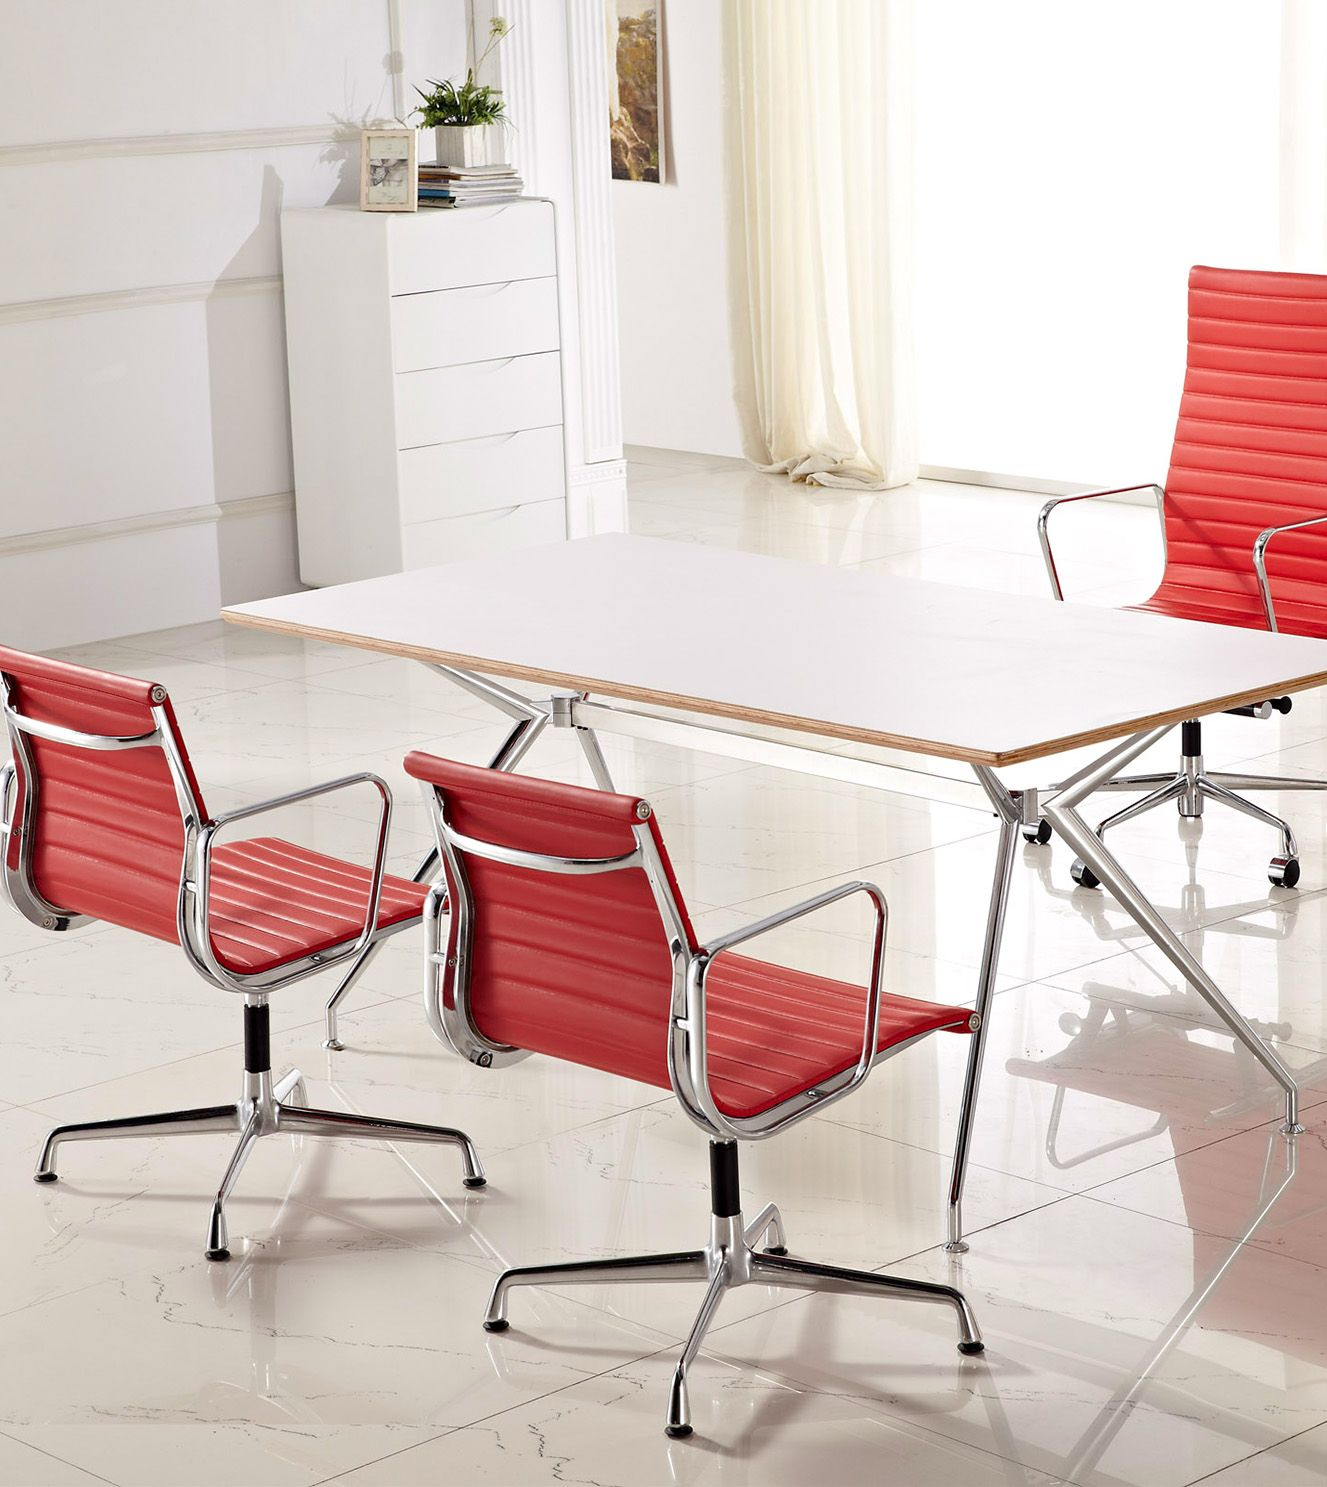 Copy Designer Furniture office desk table and replica designer chairs in various